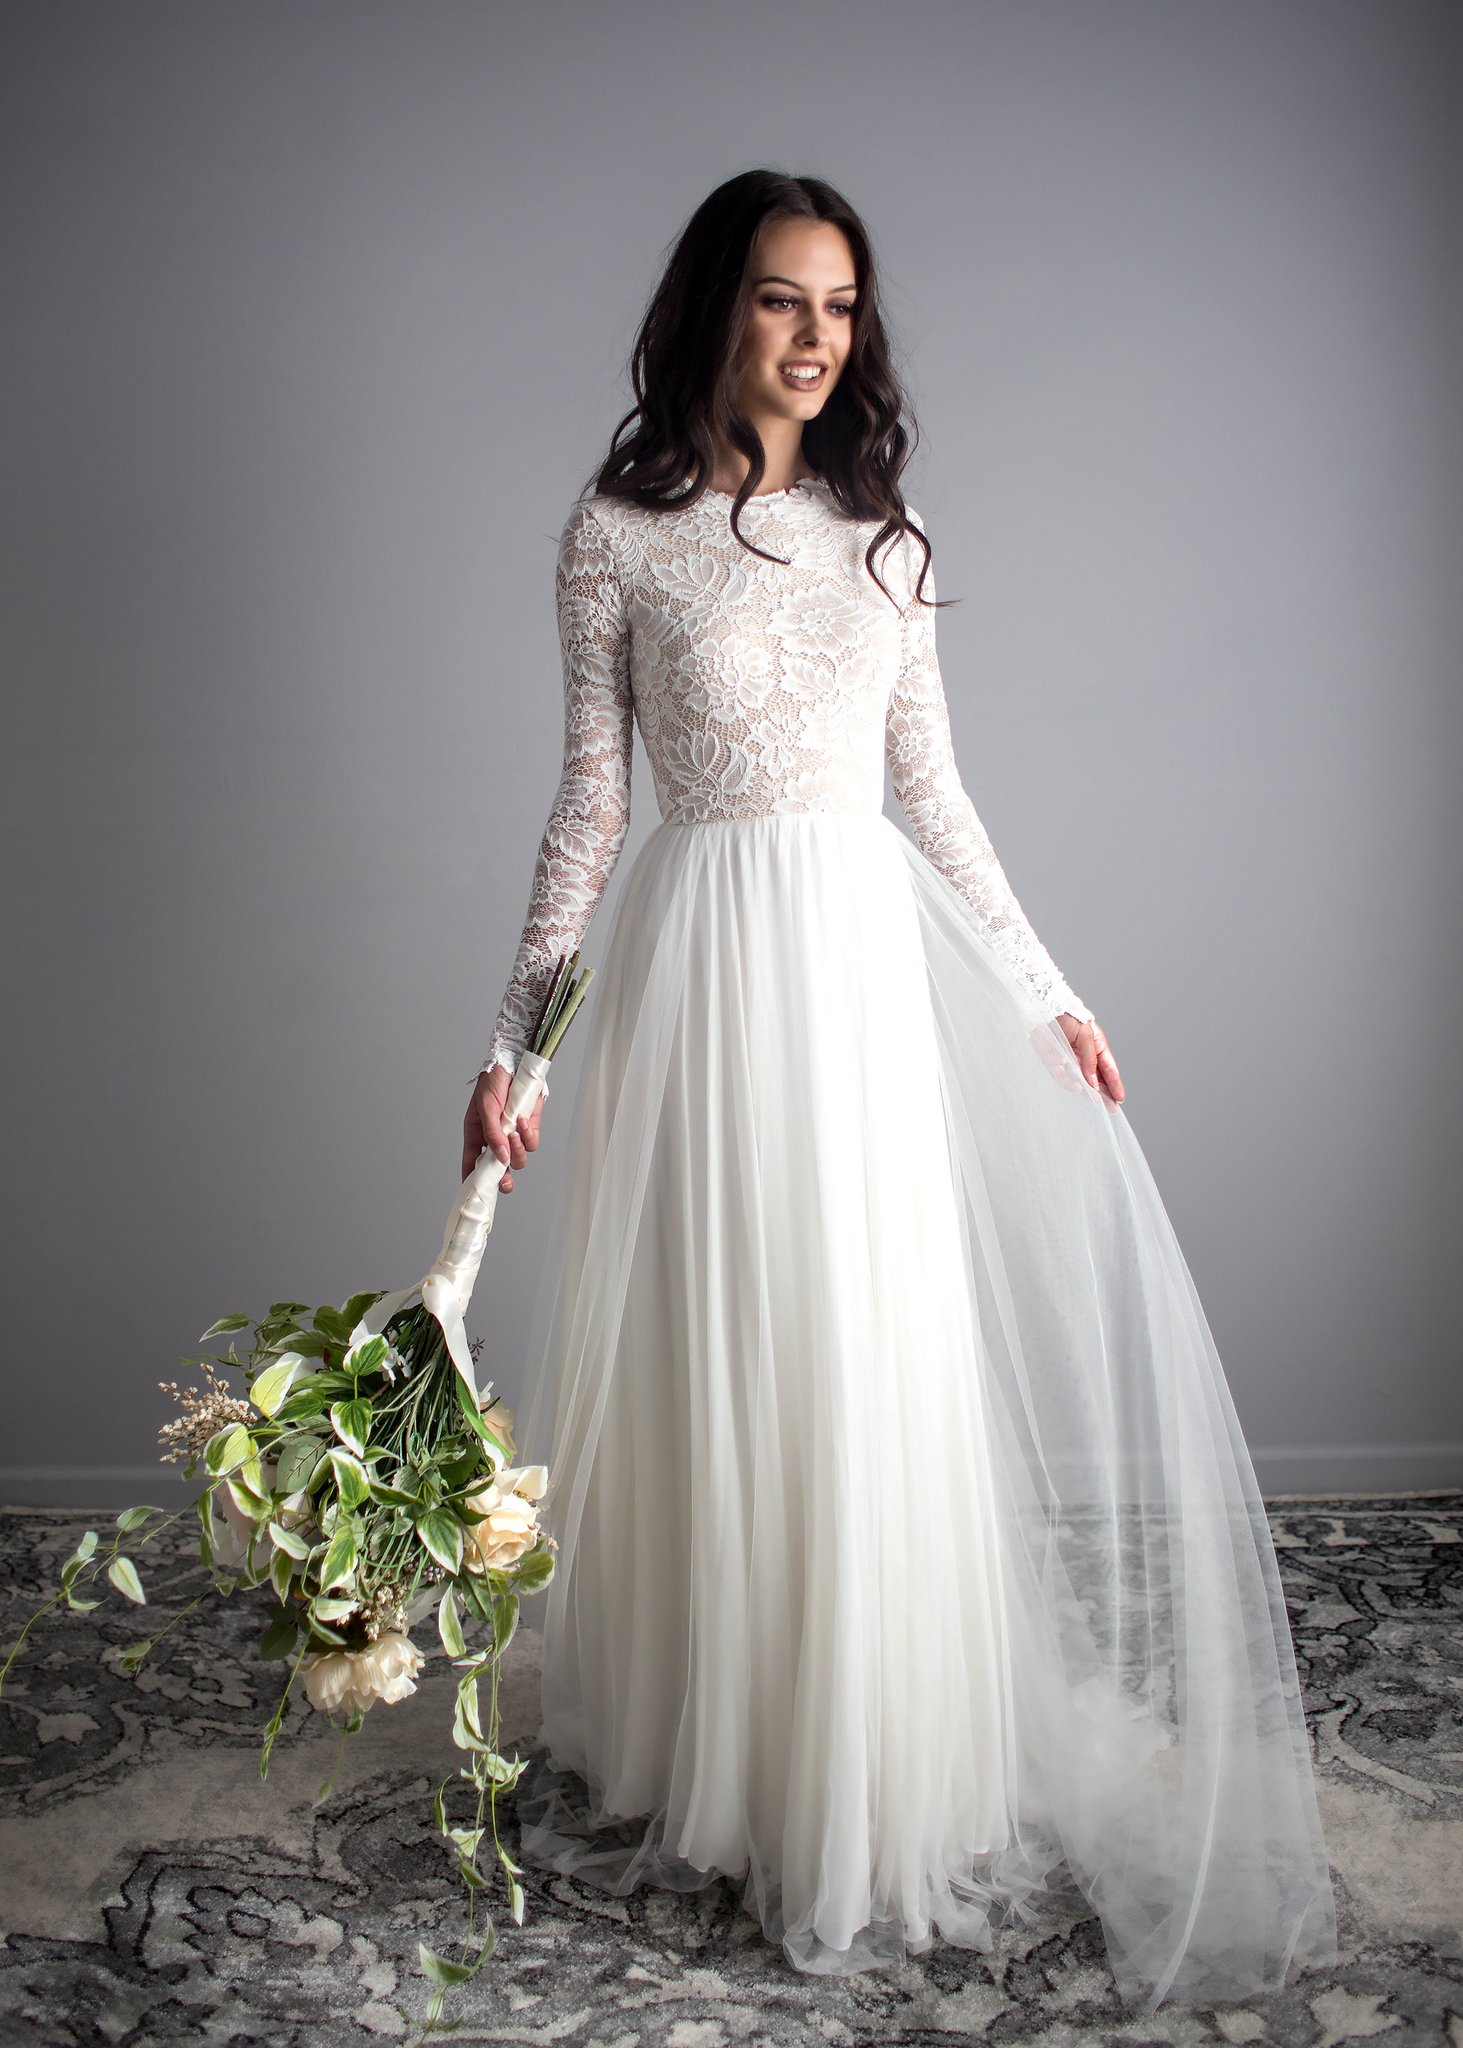 My Wedding Dress Inspiration Sparks And Bloom